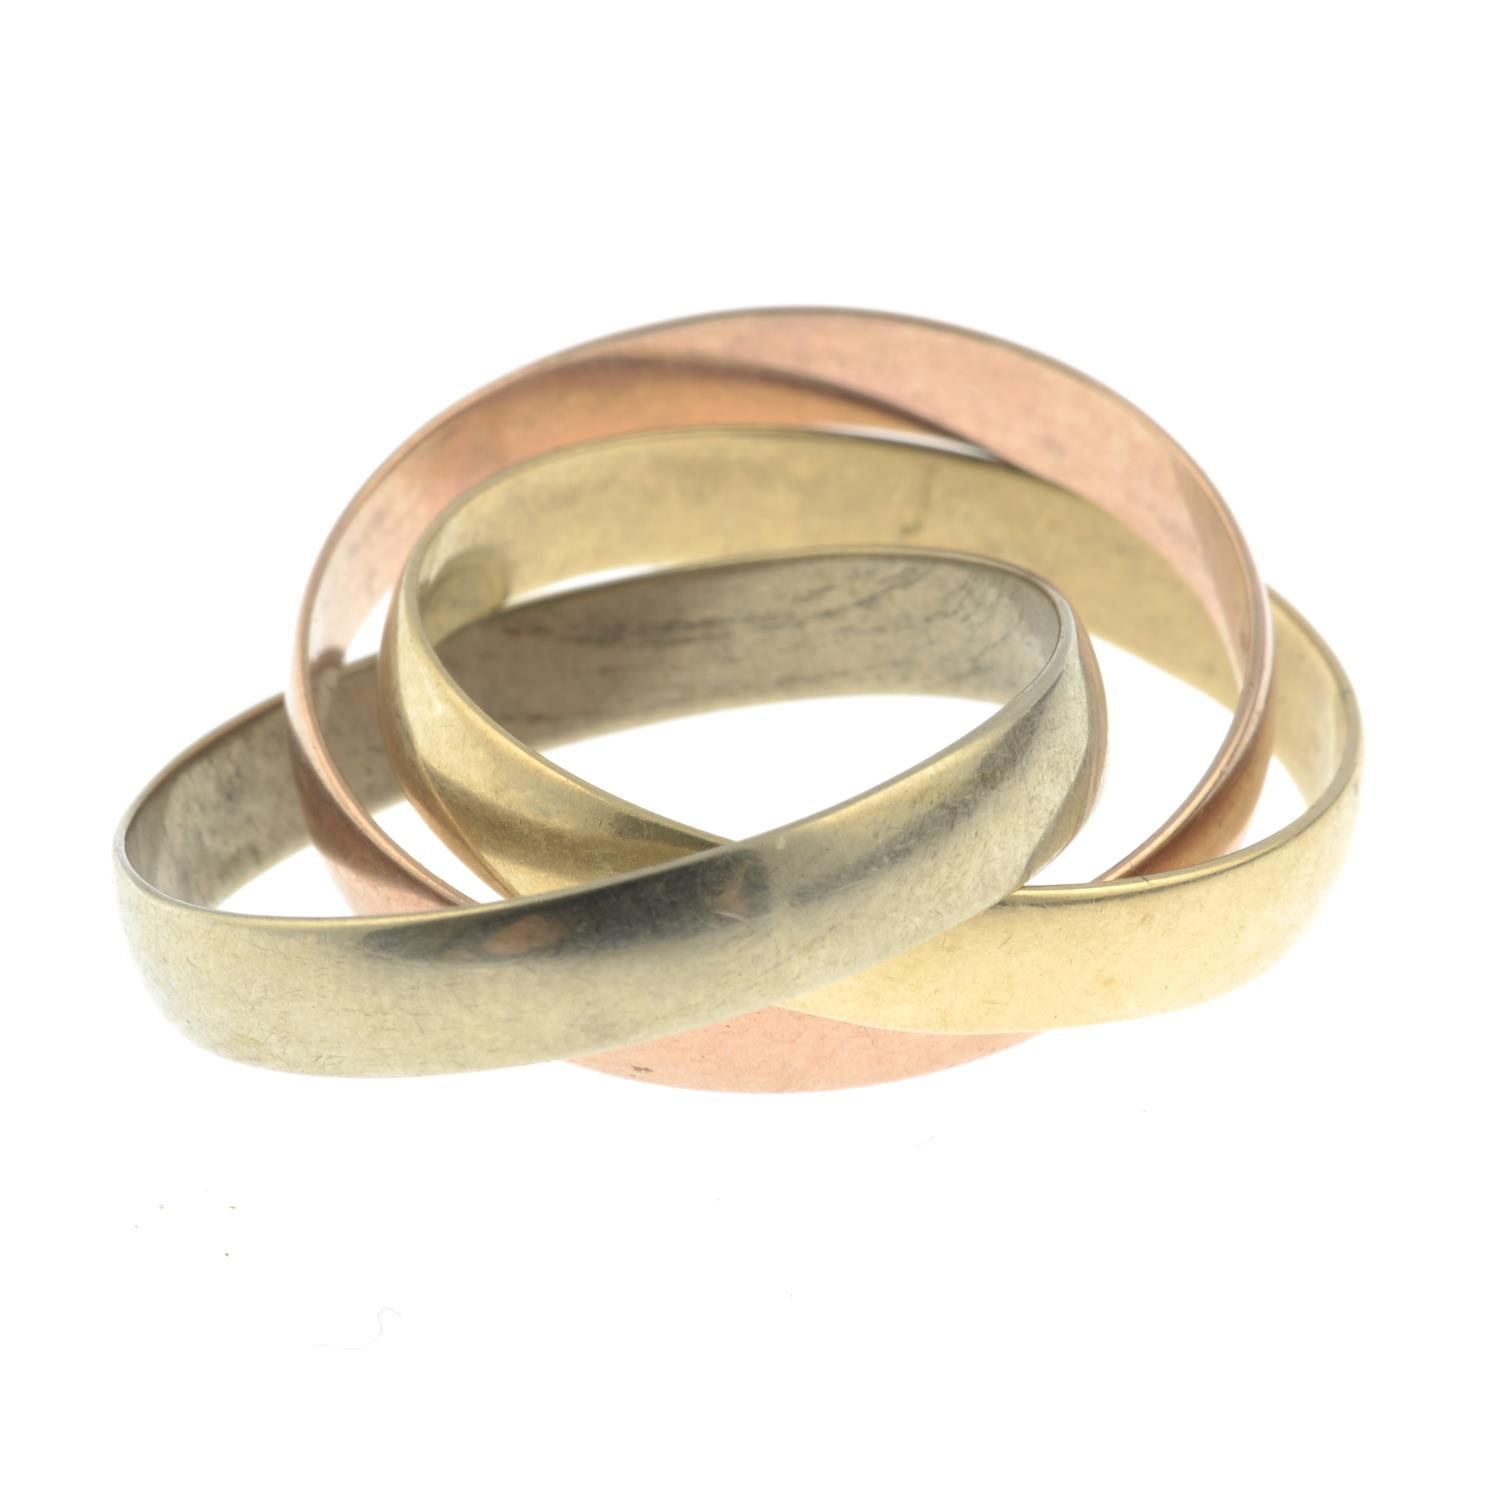 A 9ct gold tri-coloured band ring.Hallmarks for London.Ring size U. - Image 2 of 2